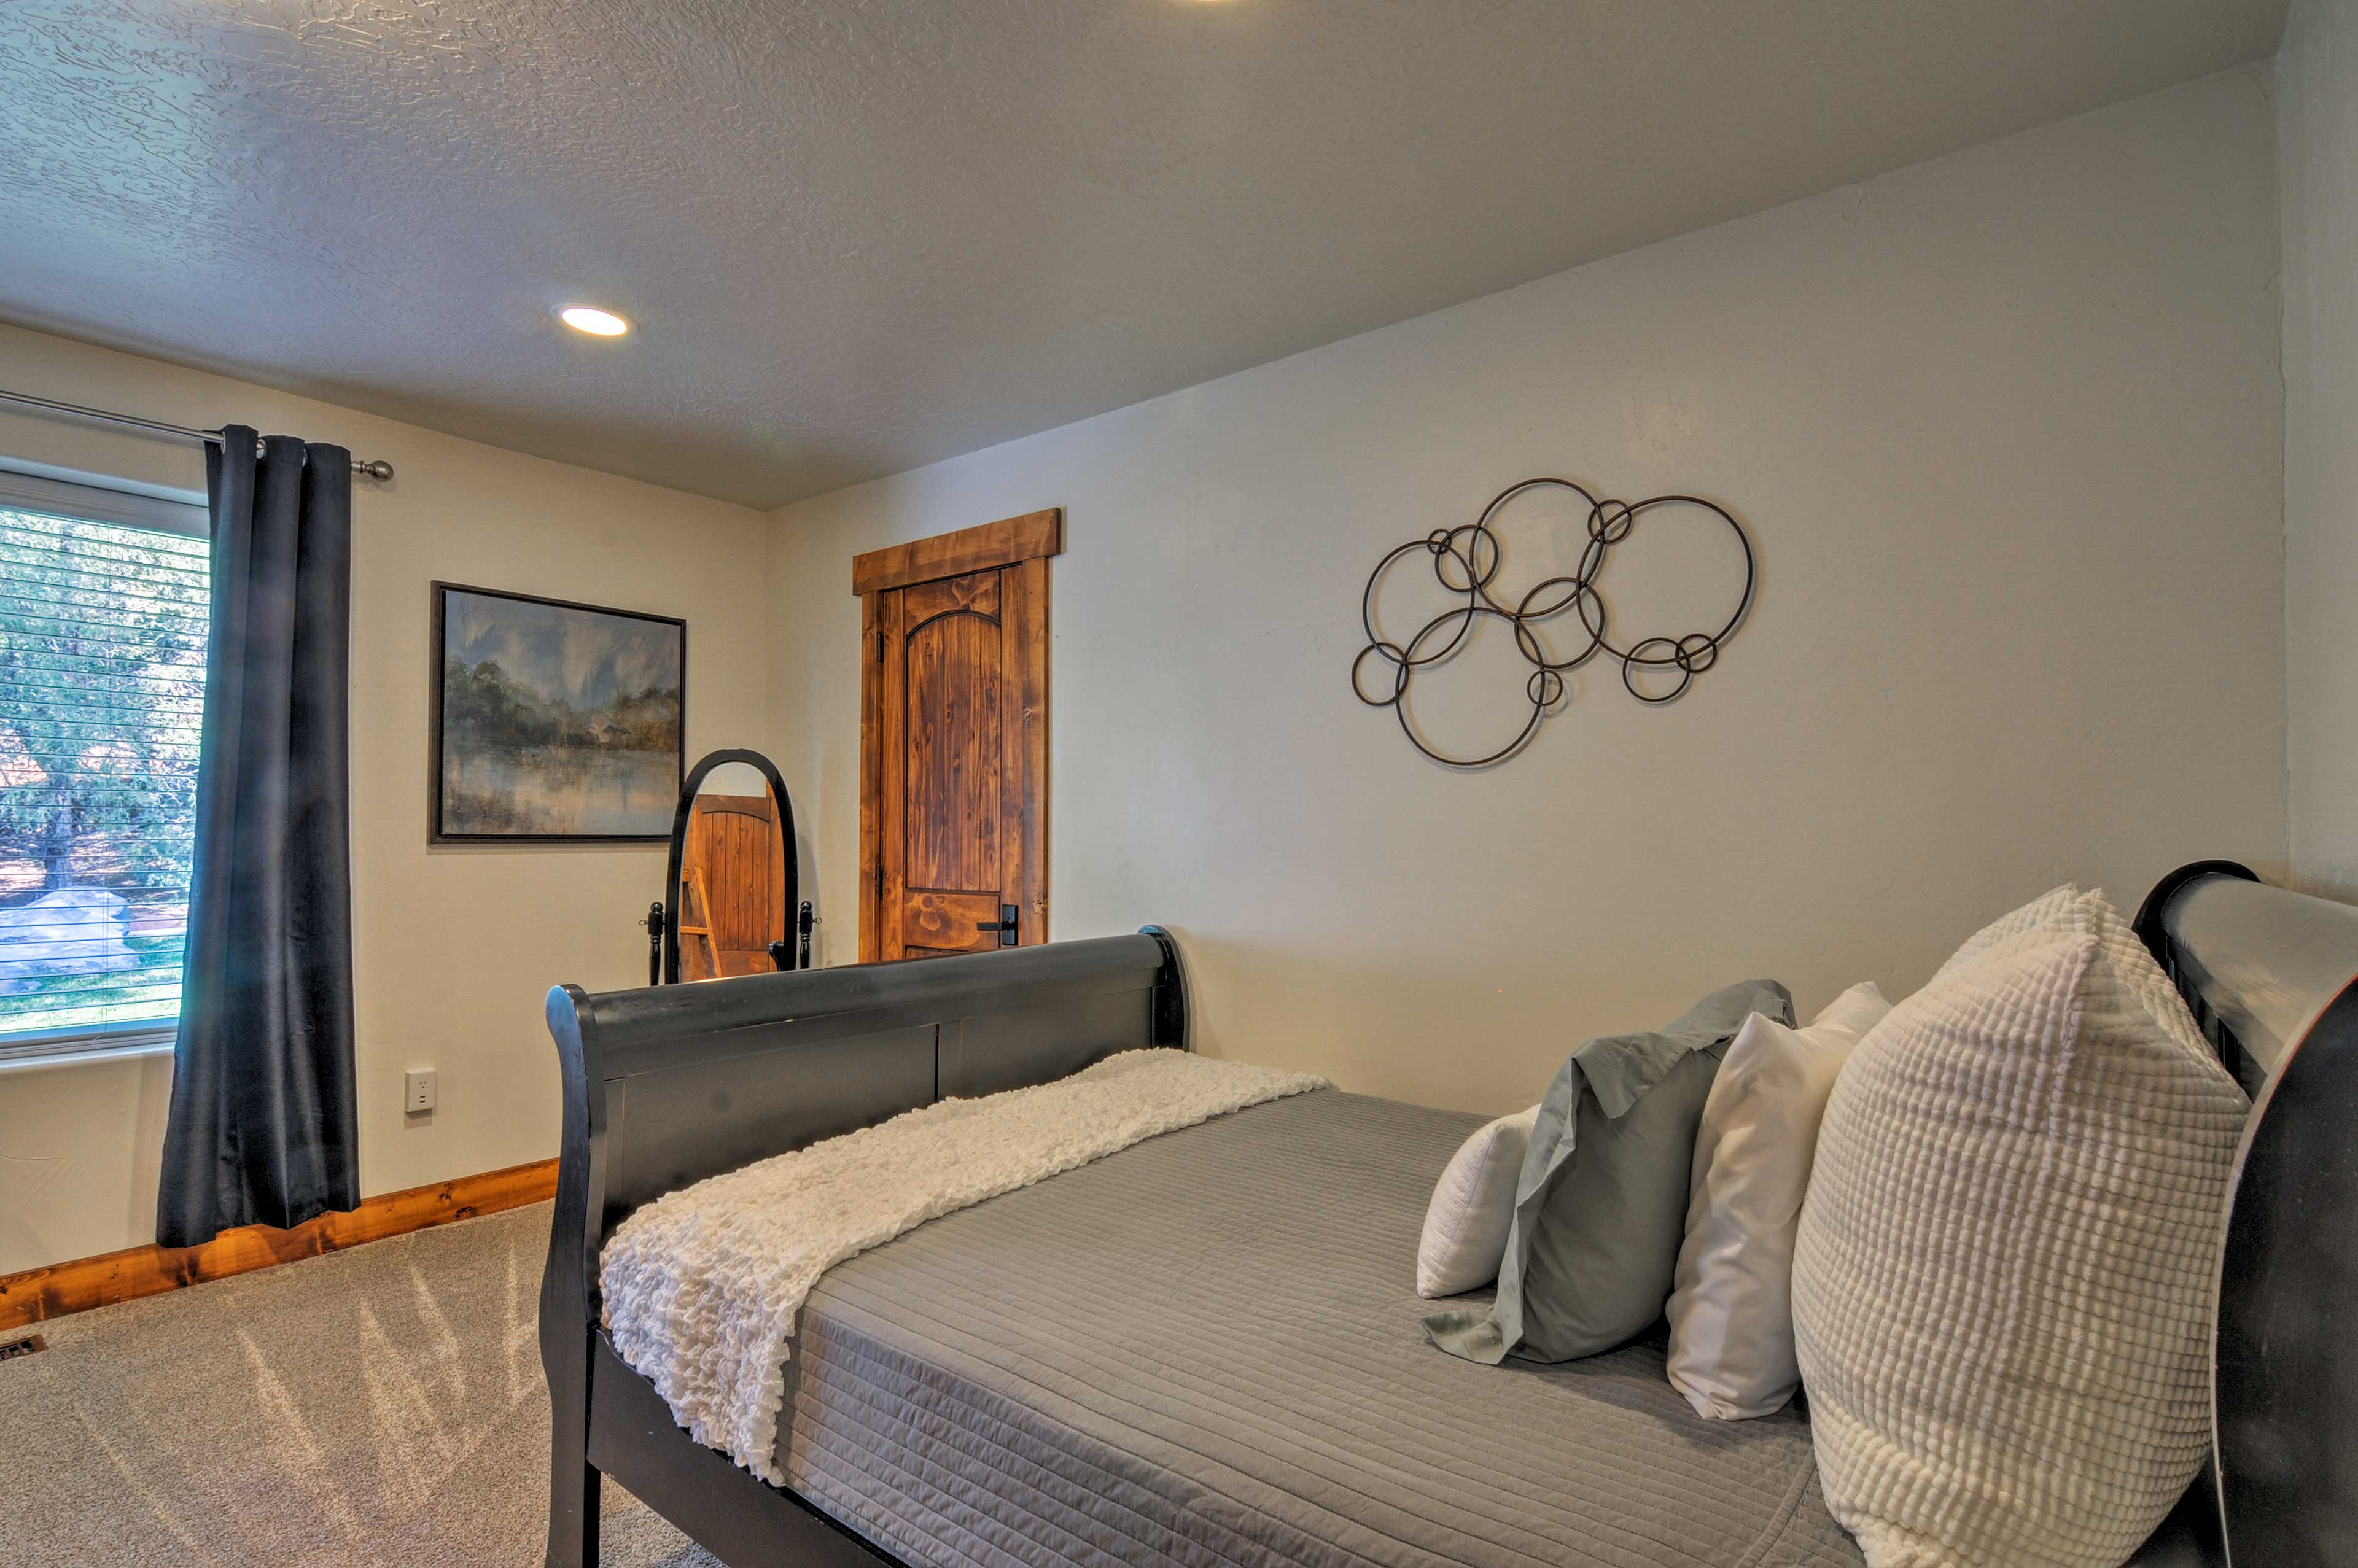 A third bedroom offers a queen-sized bed and bunk beds.